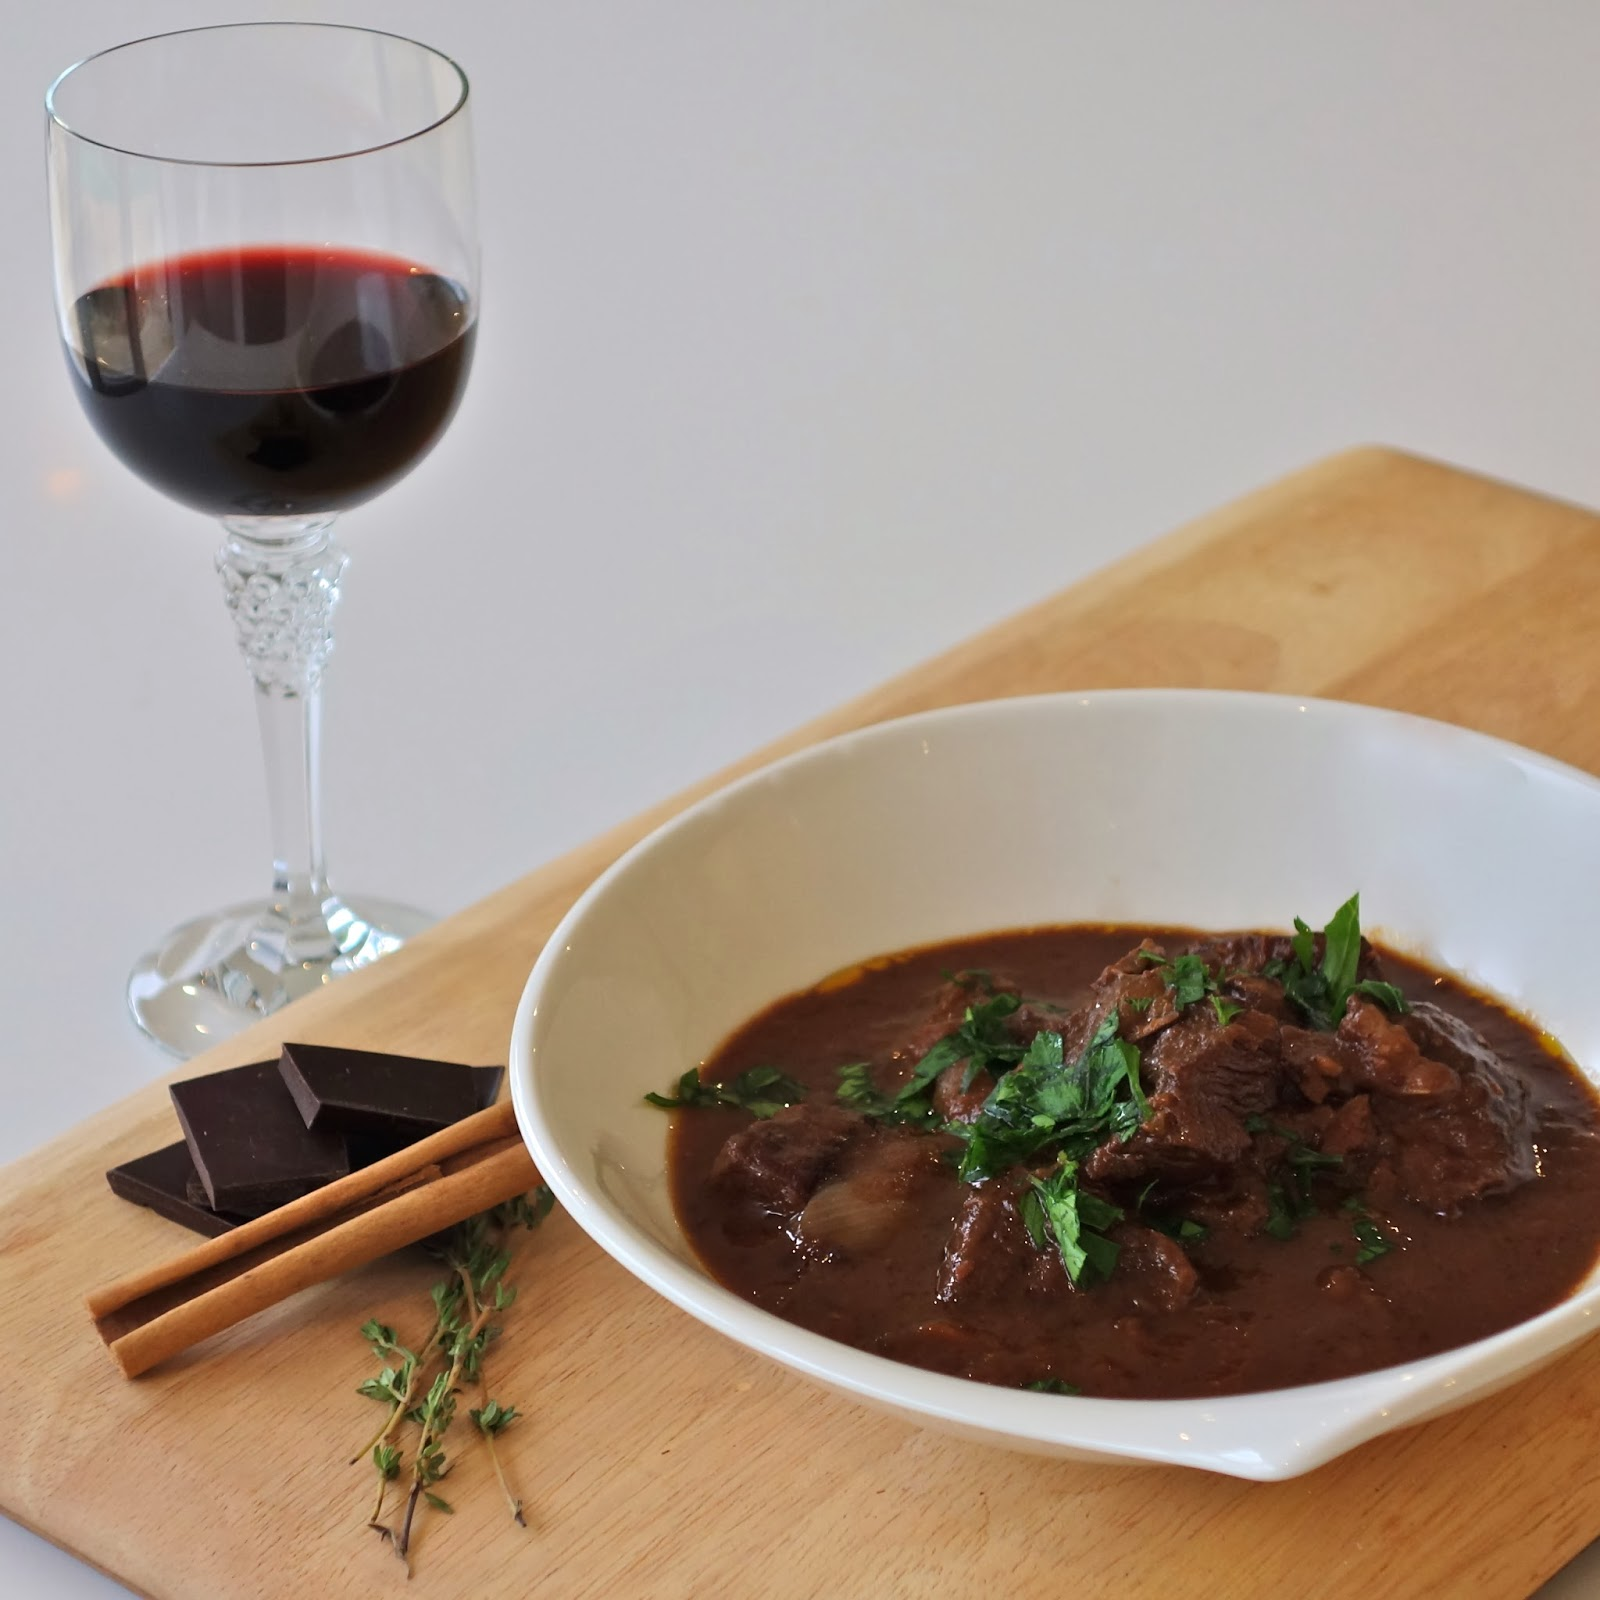 juicy JUICY green grass: Red Wine and Chocolate Beef Stew